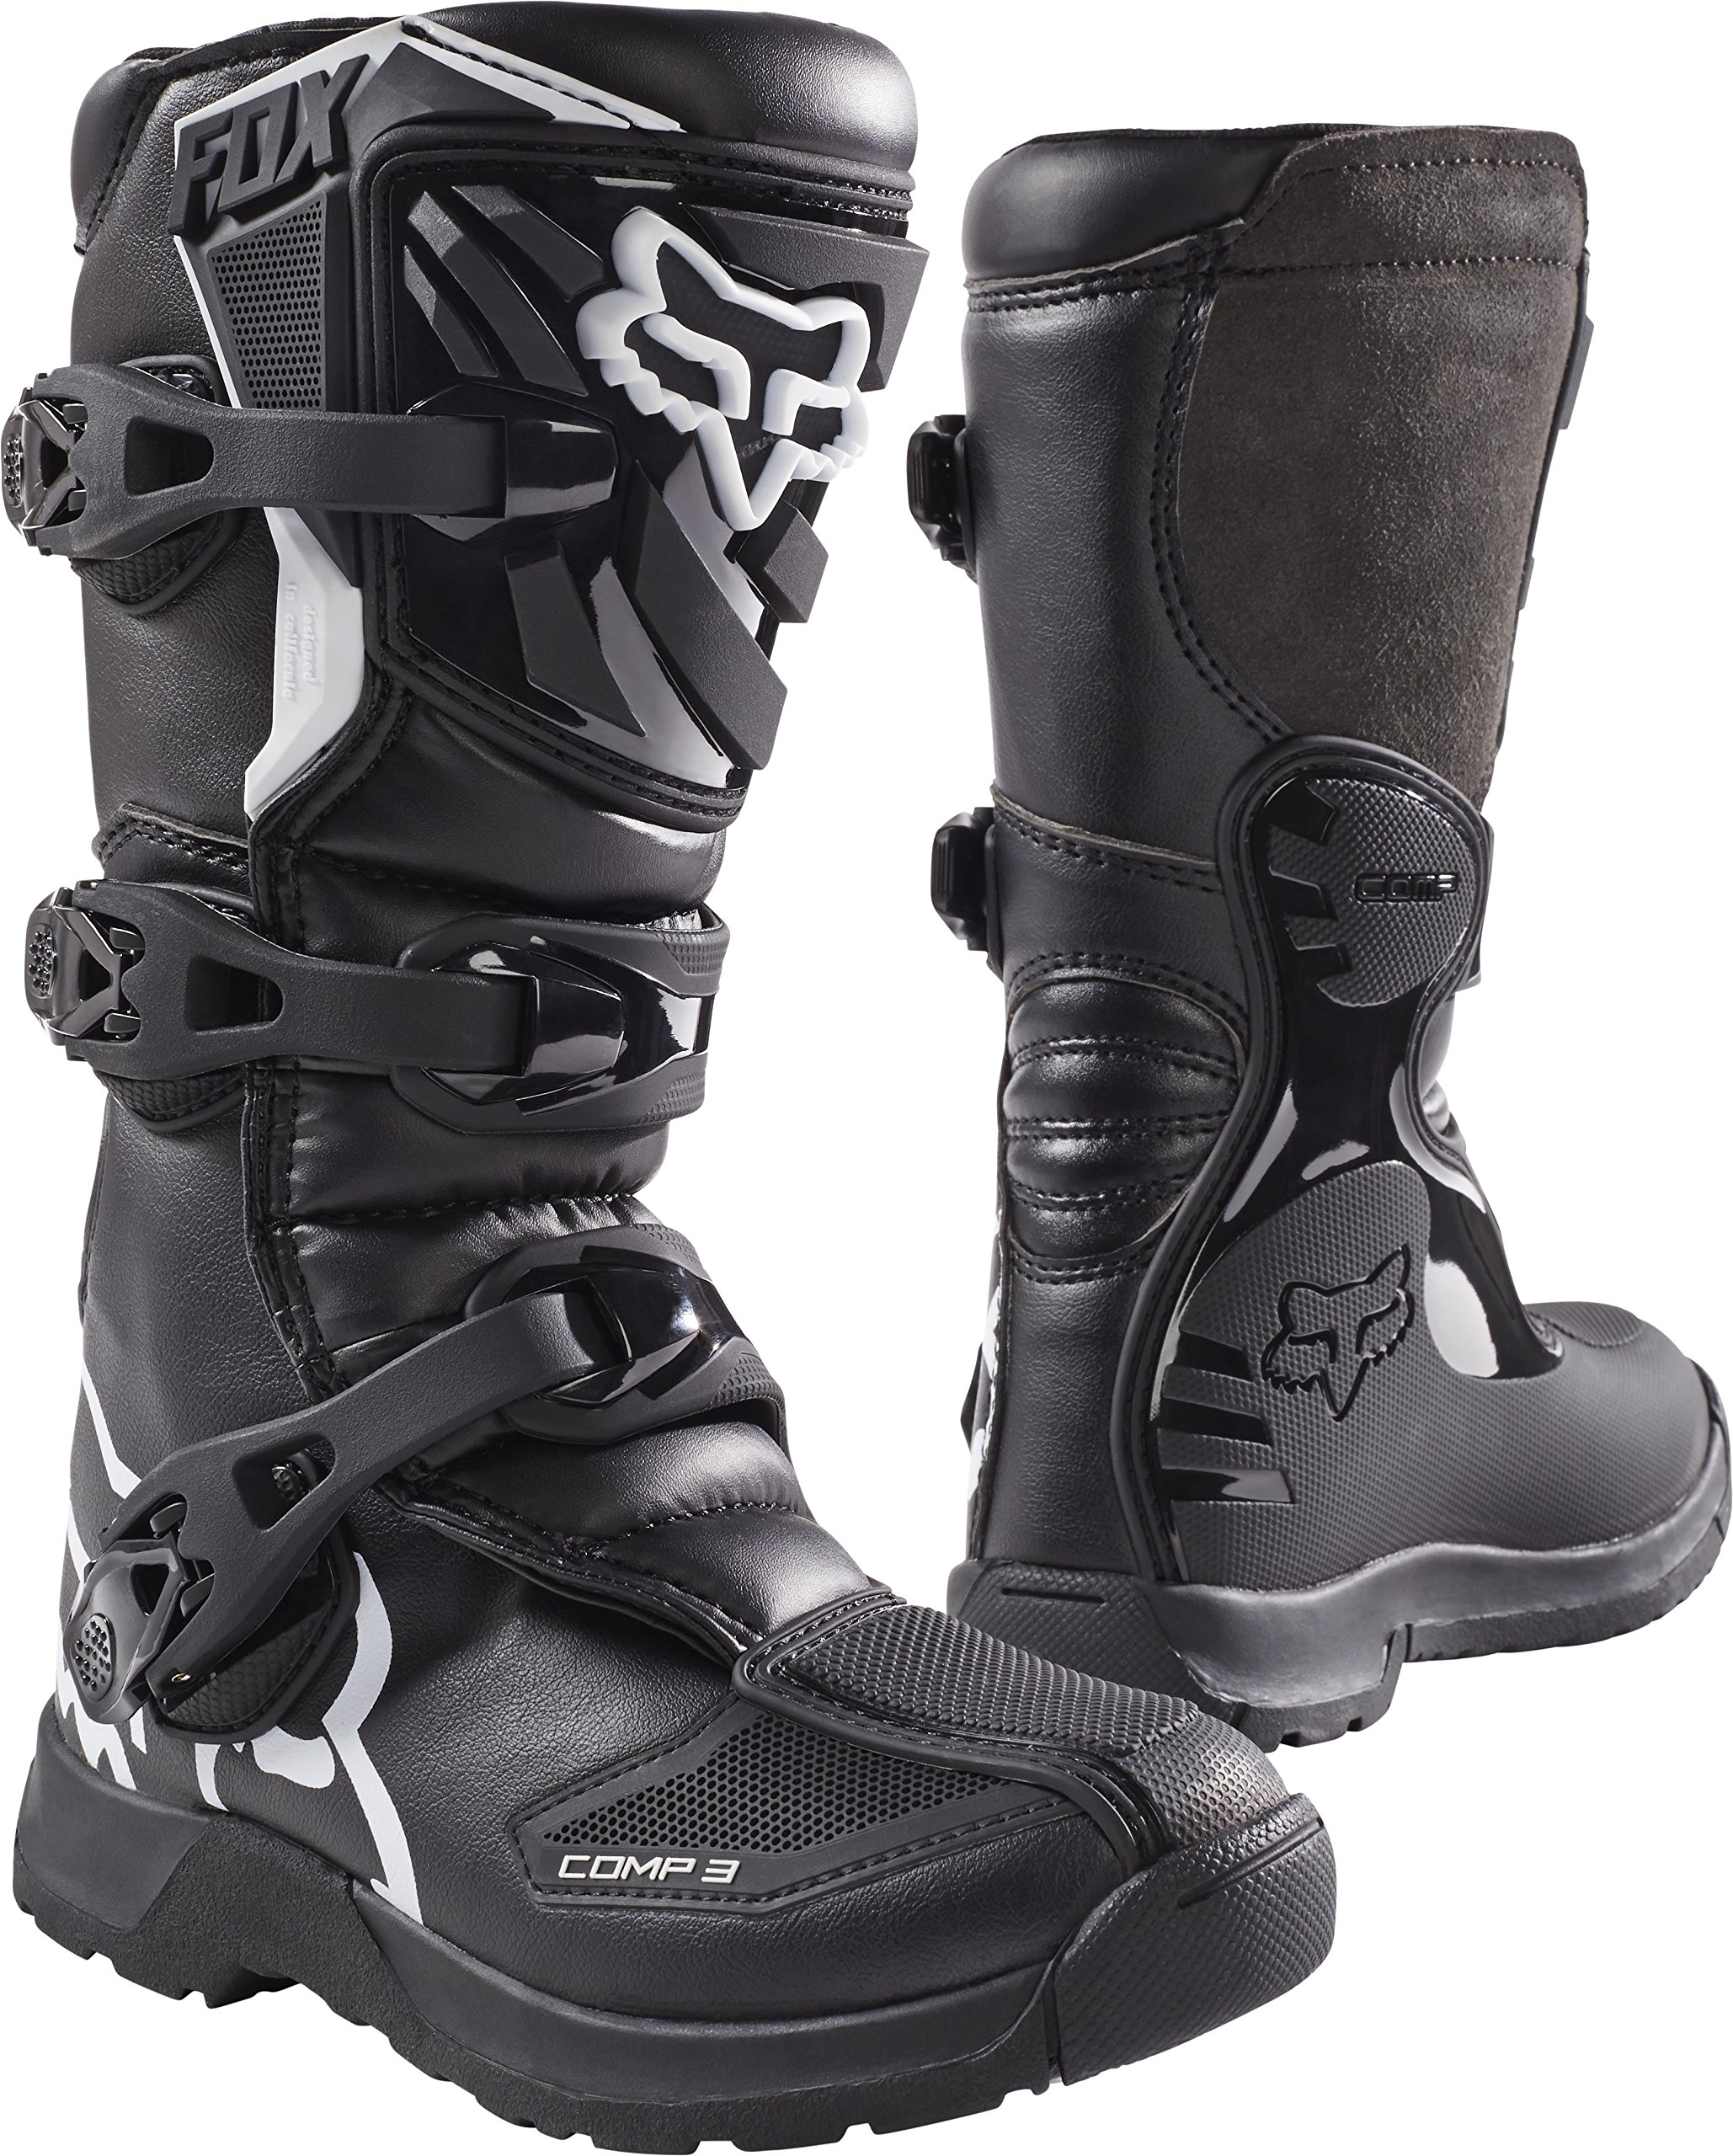 Fox Racing Comp 3 2017 Youth MX/Offroad Boots Black/White 7 USA by Fox Racing (Image #1)